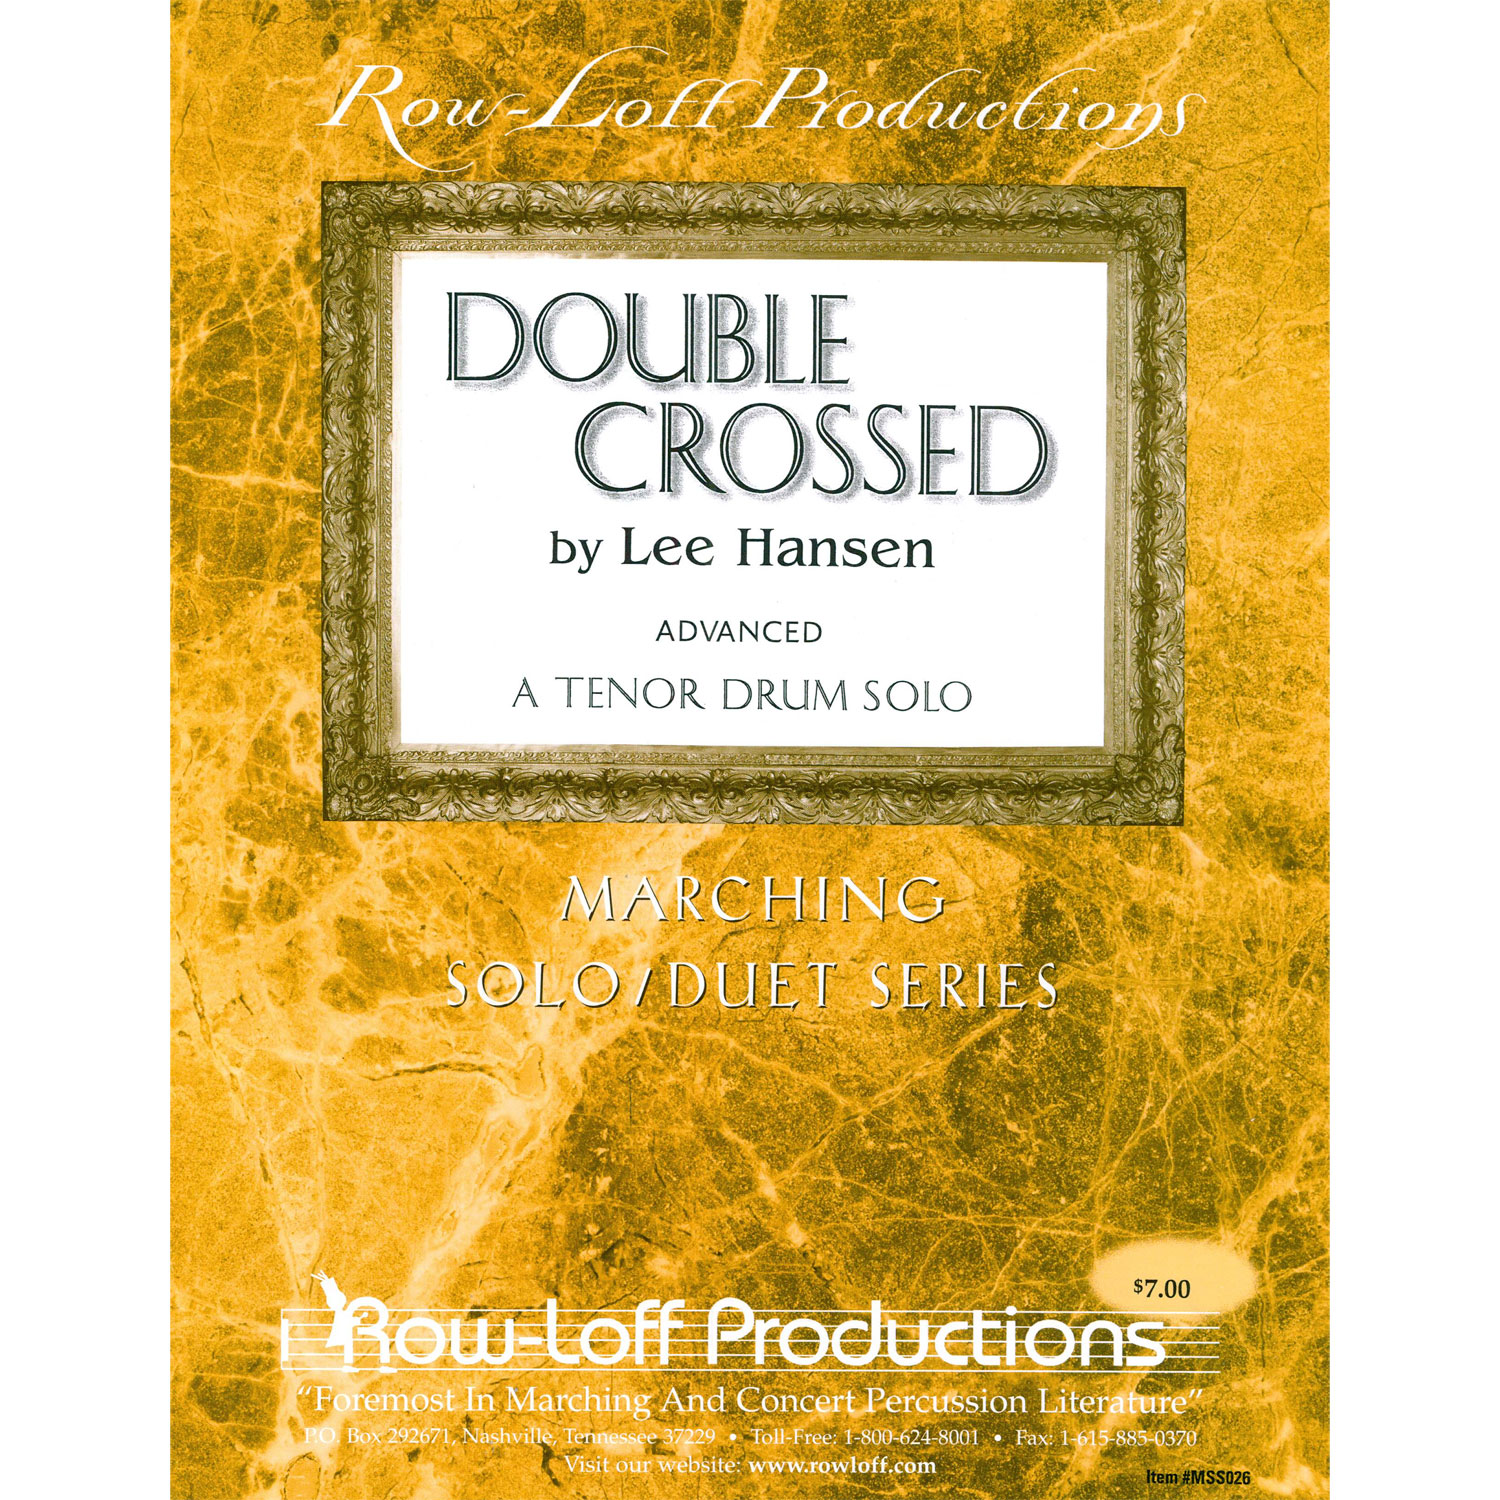 Double Crossed by Lee Hansen